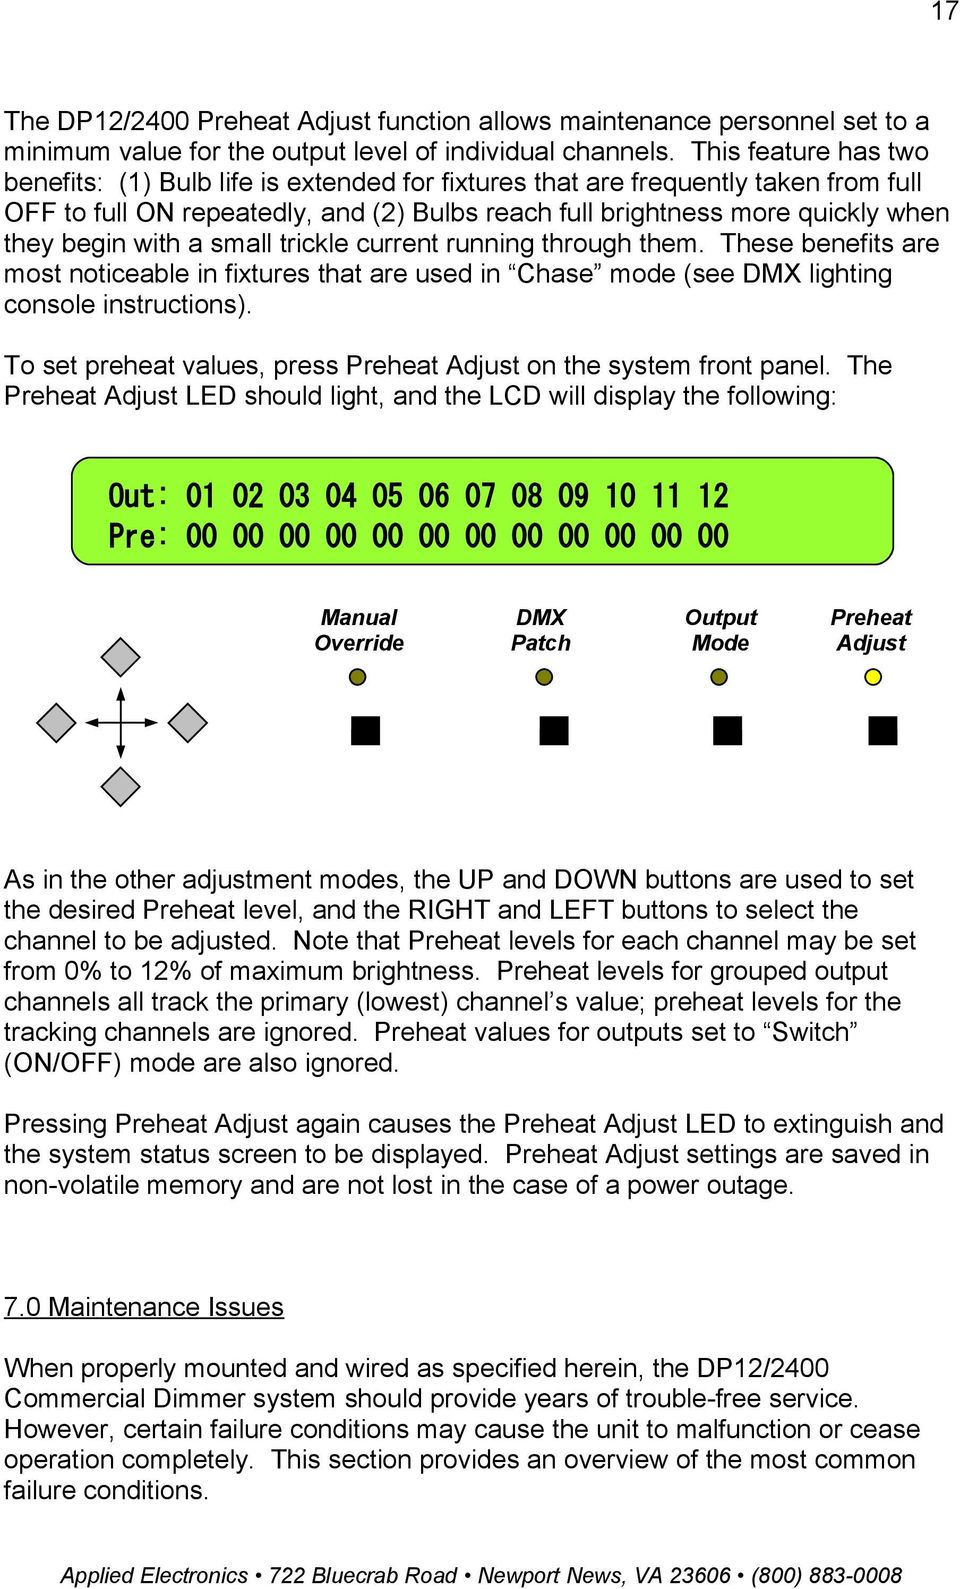 Applied Electronics Commercial Dimming System Update Notice Pdf Chase Wiring Instructions With A Small Trickle Current Running Through Them These Benefits Are Most Noticeable In Fixtures